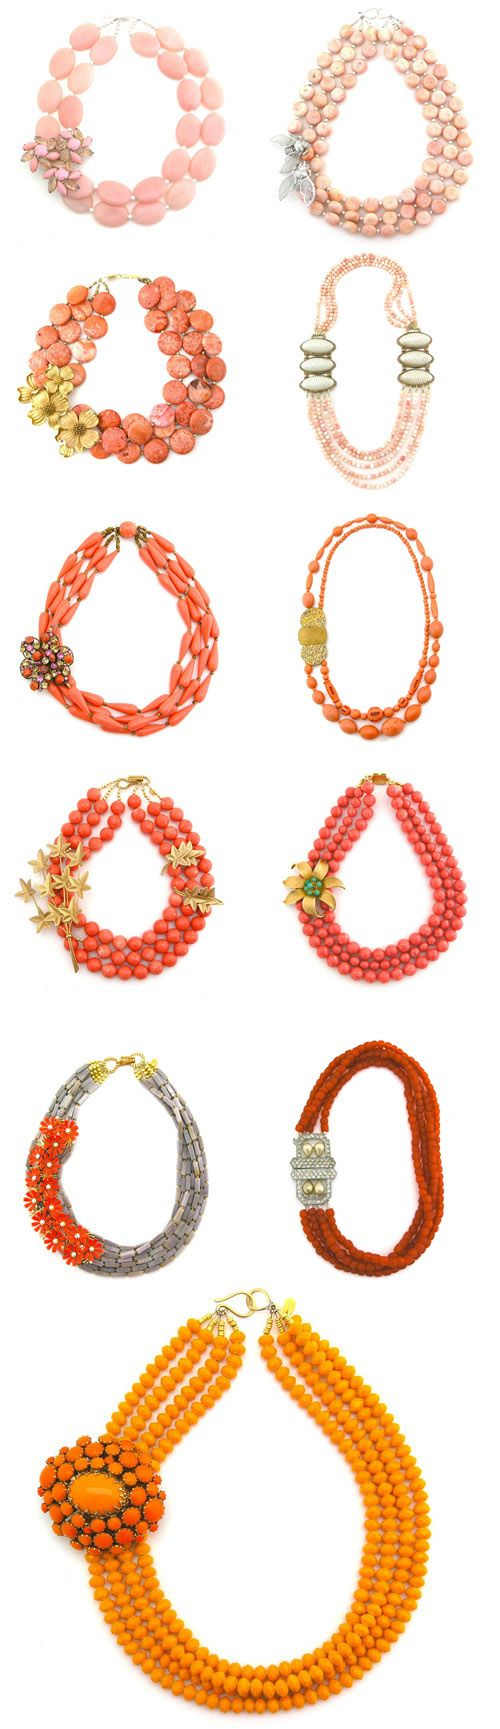 statement necklaces from the Elva Fields spring 2012 collection